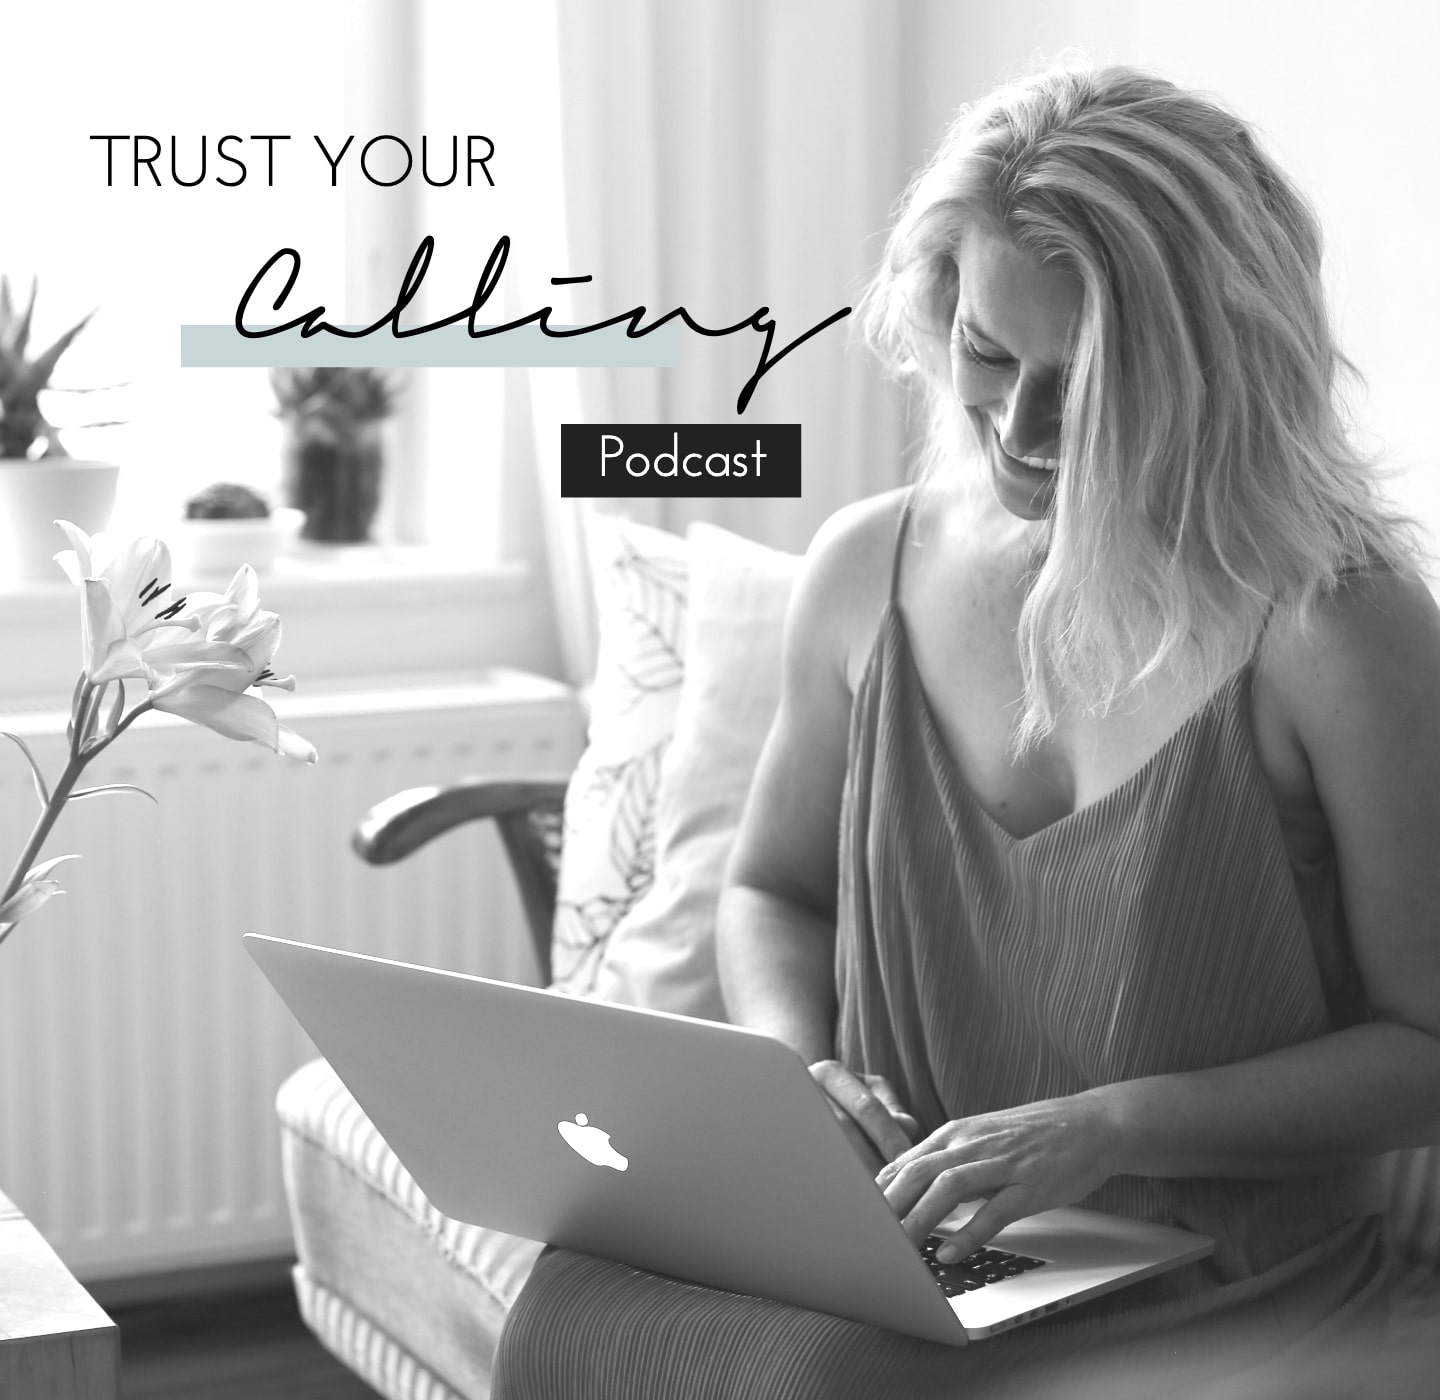 trust your calling podcast